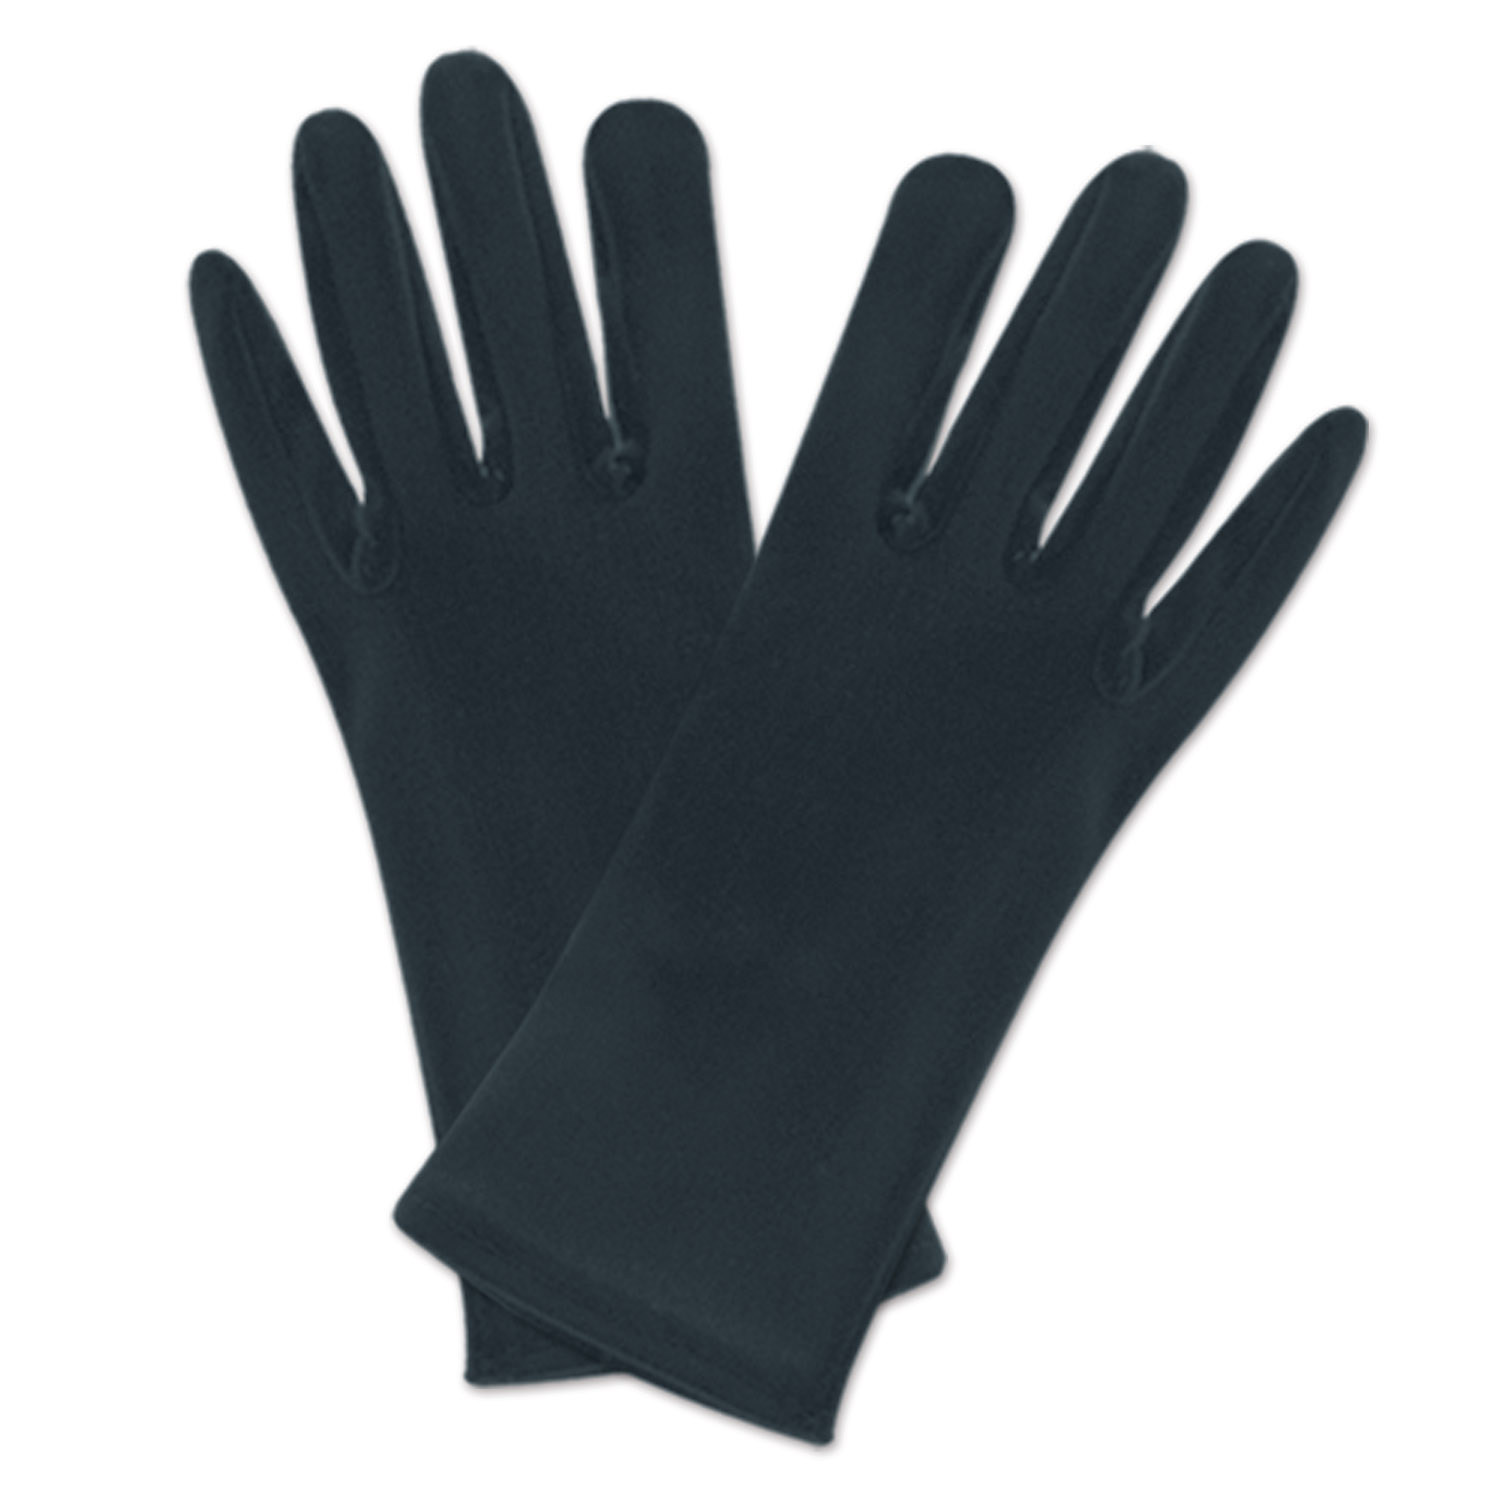 Black theatrical gloves that fits most people.